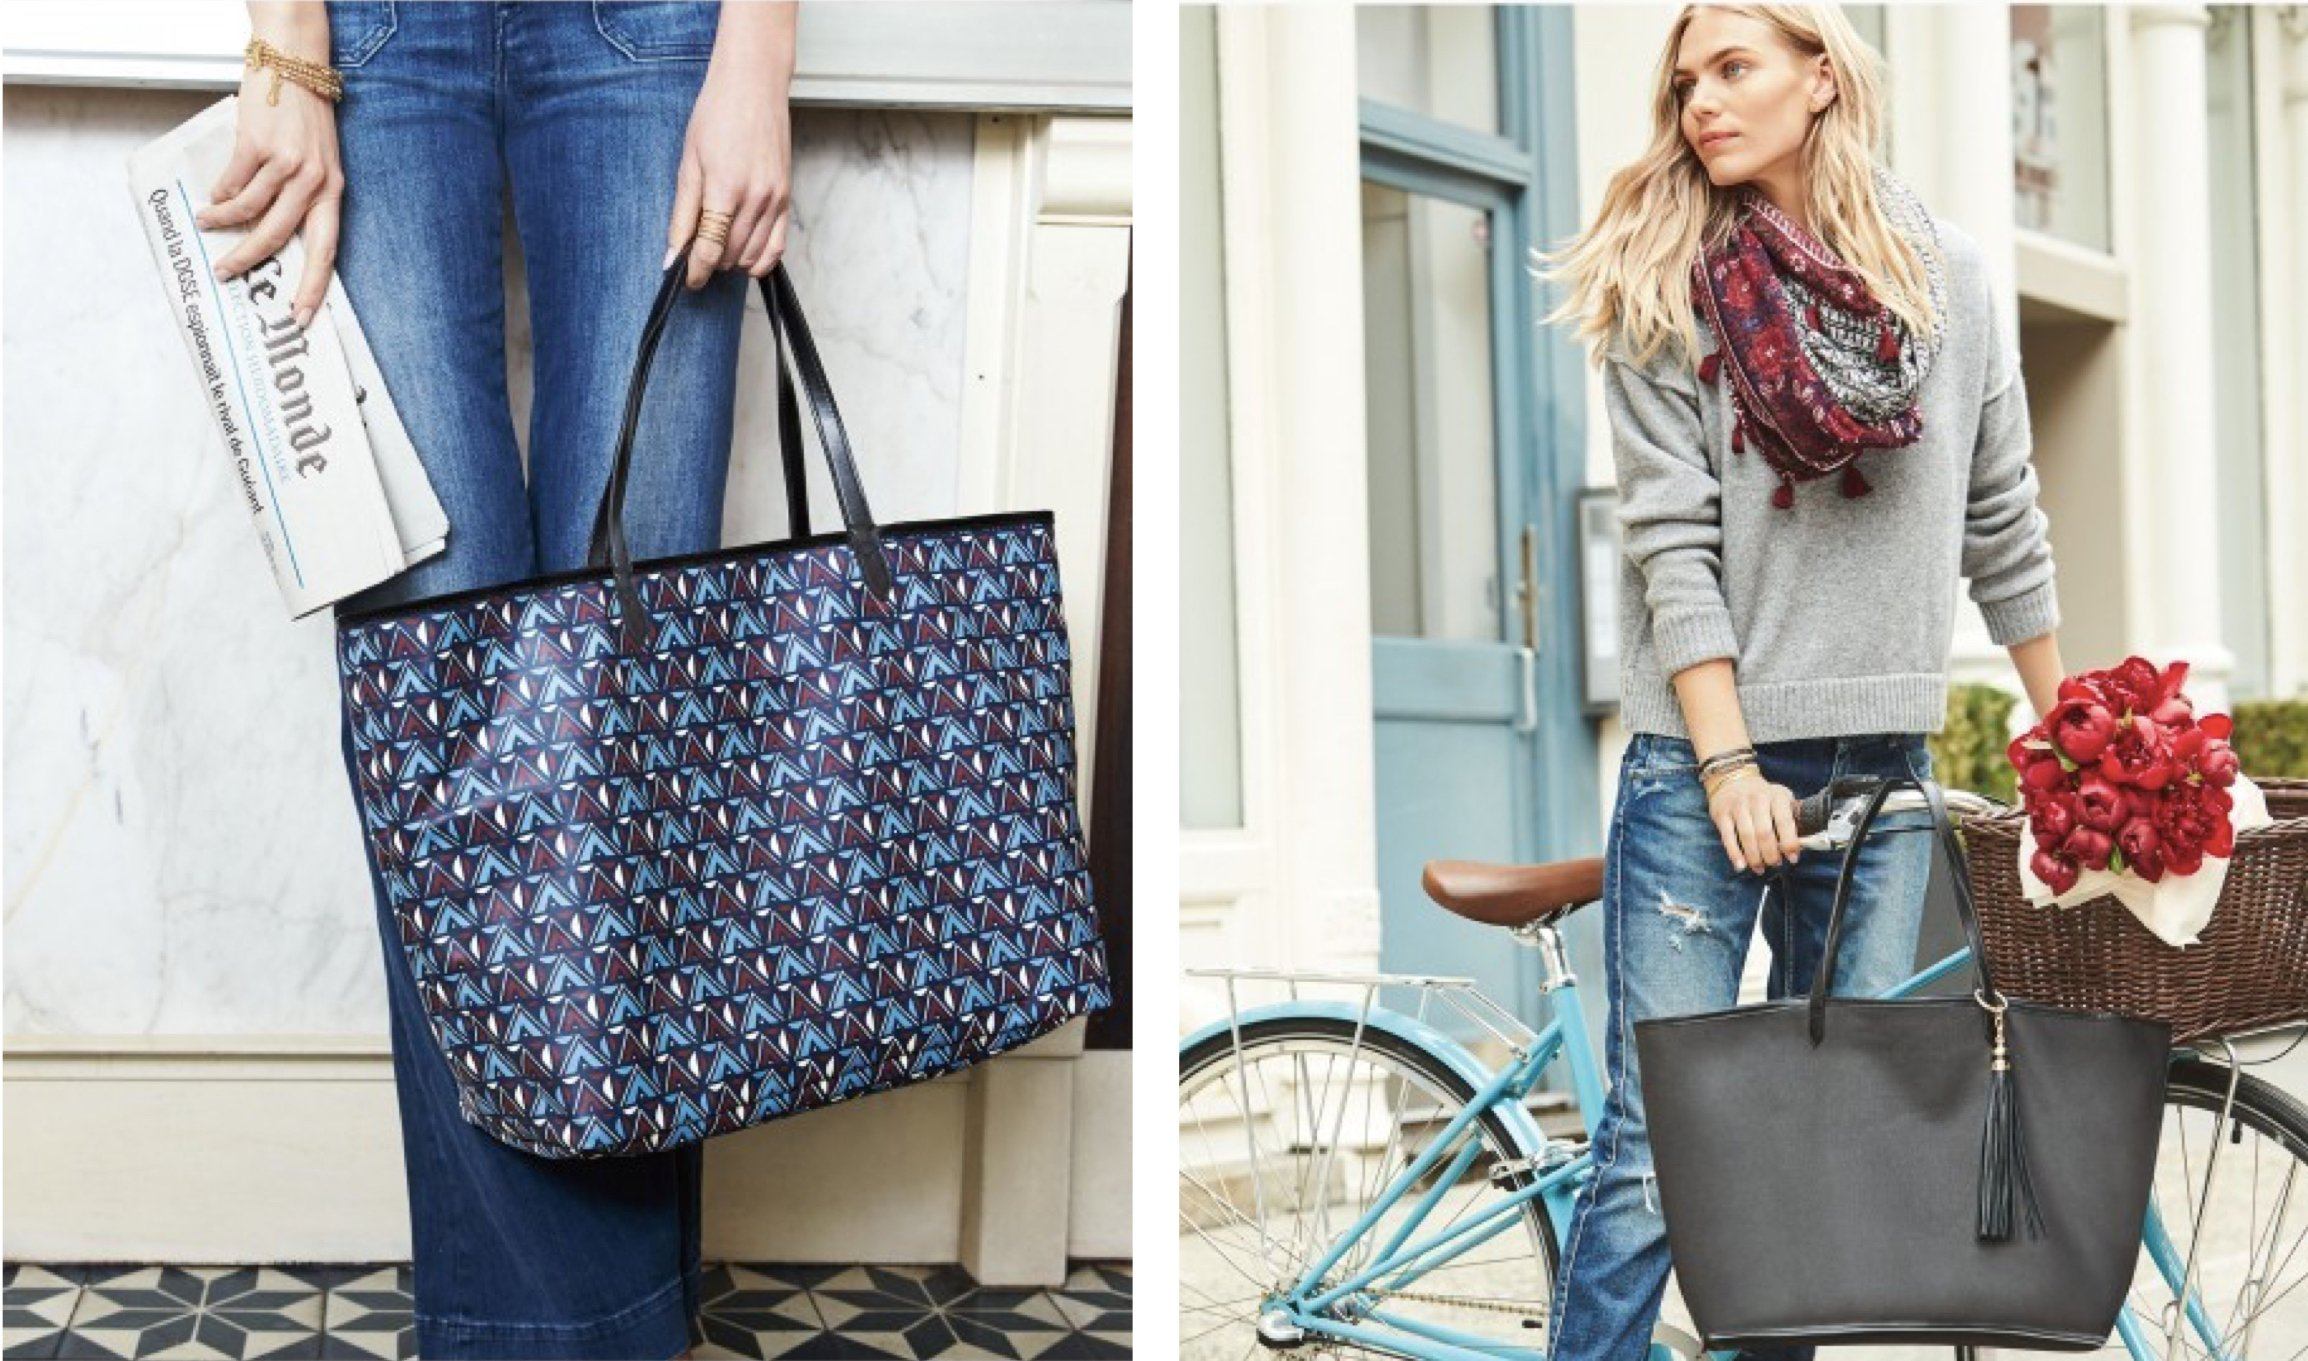 Reversible Voyage Tote in Black & Tribal Prints, back to school tote